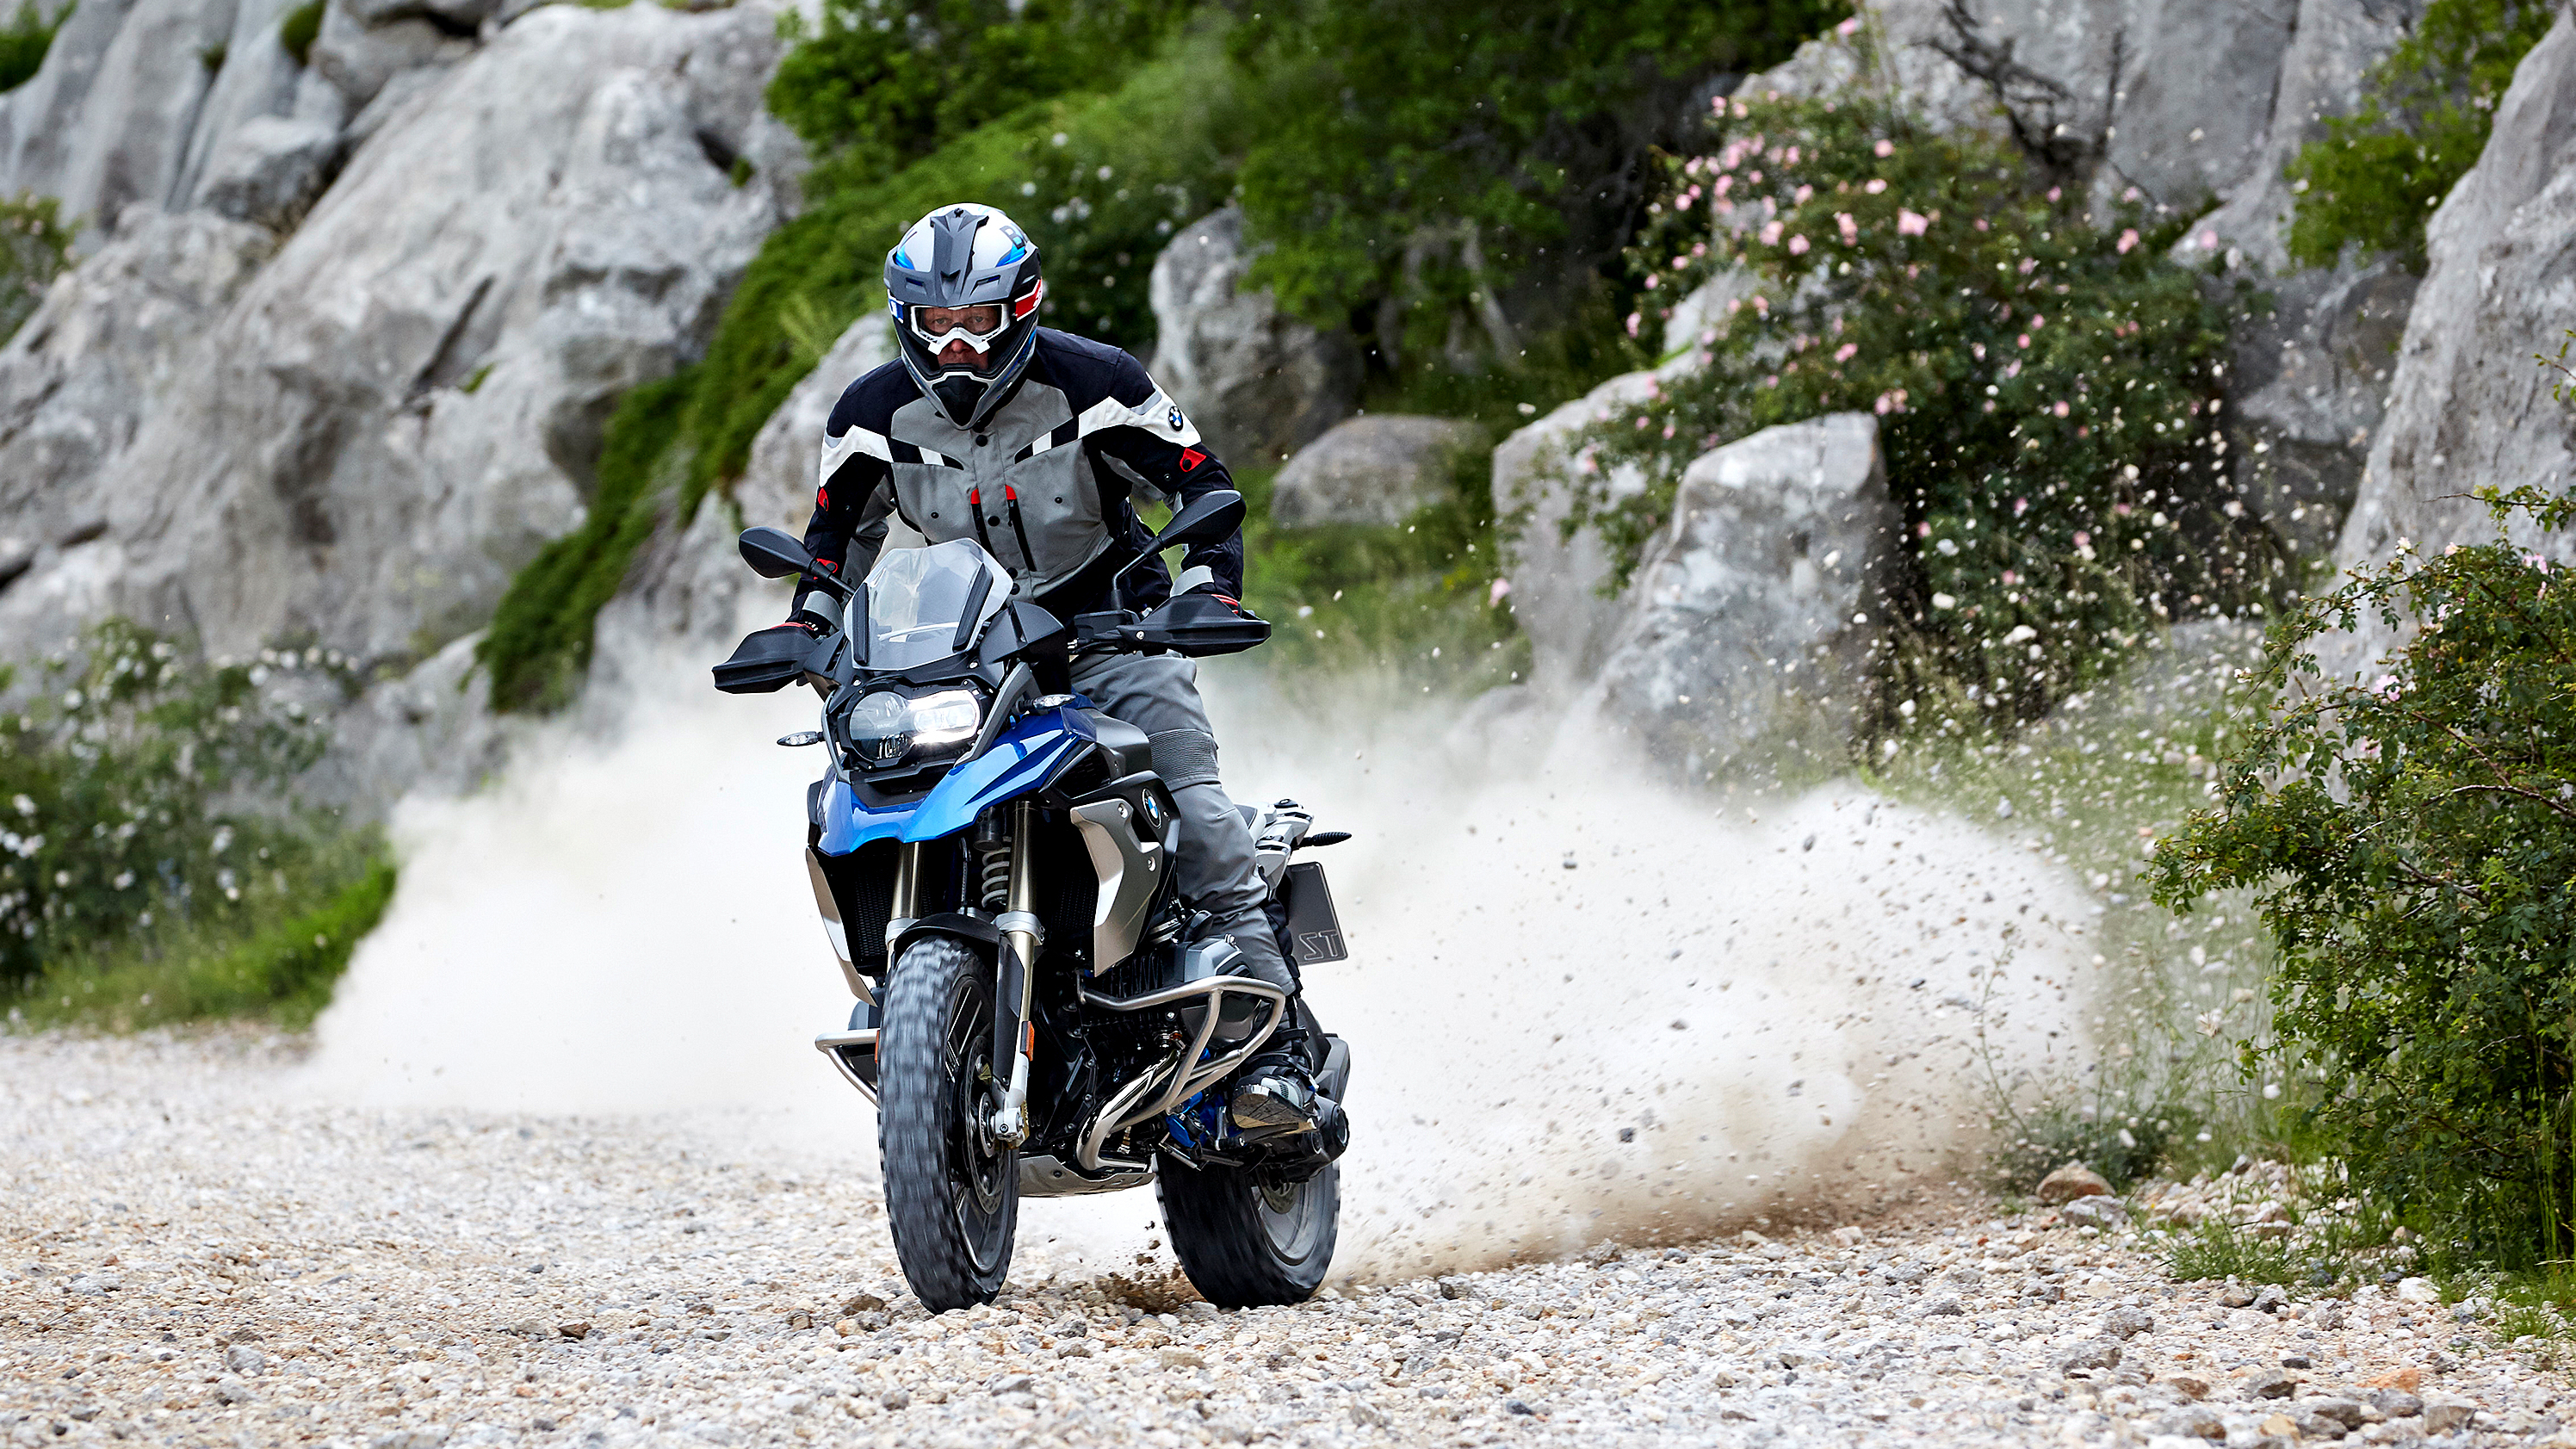 2018 BMW R 1200 GS Pictures, Photos, Wallpapers